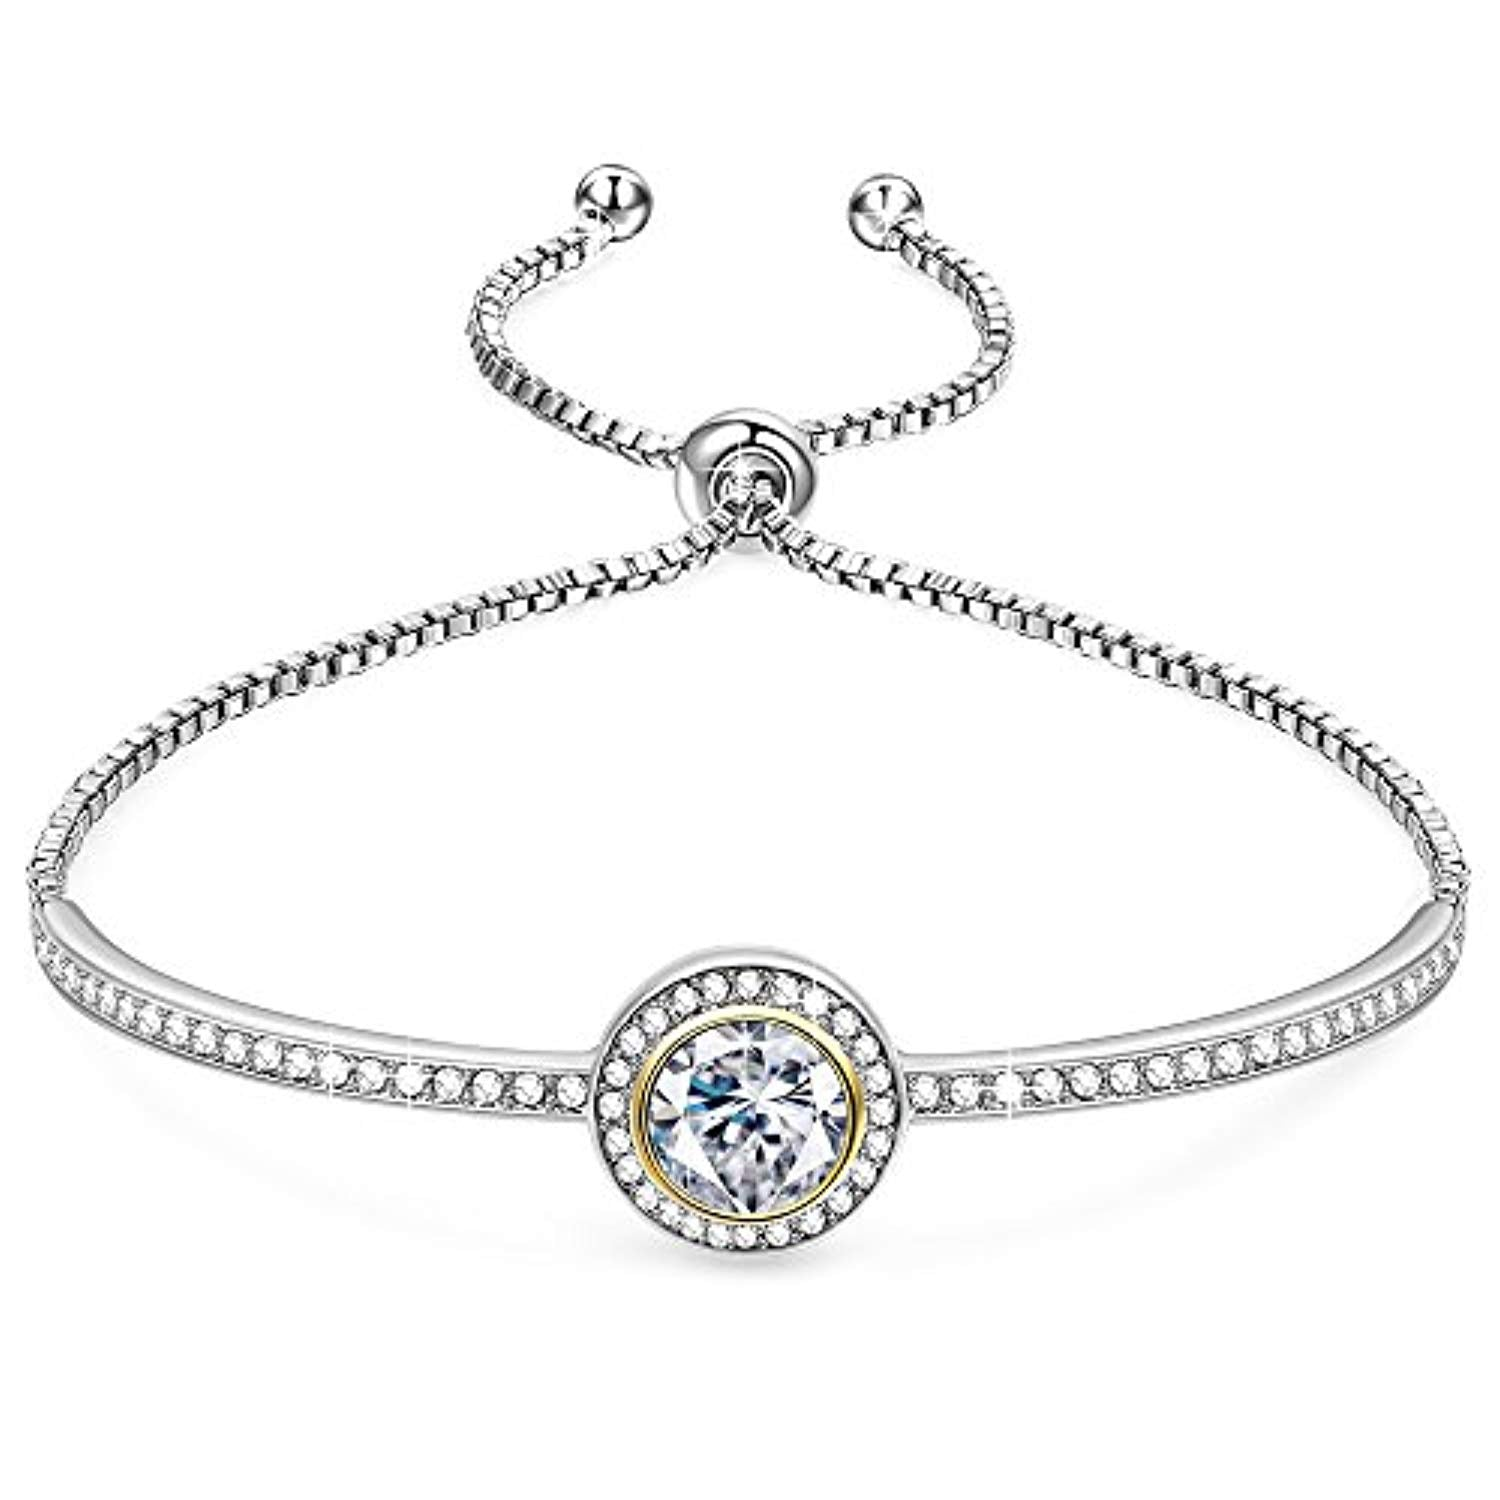 "Birthday Gifts""Endless Saturn""Classic Design Adjustable Women Bangle Bracelet Crystals from Swarovski, Jewelry for Girlfriend Wife Mom -a Luxury Gift Box Included"